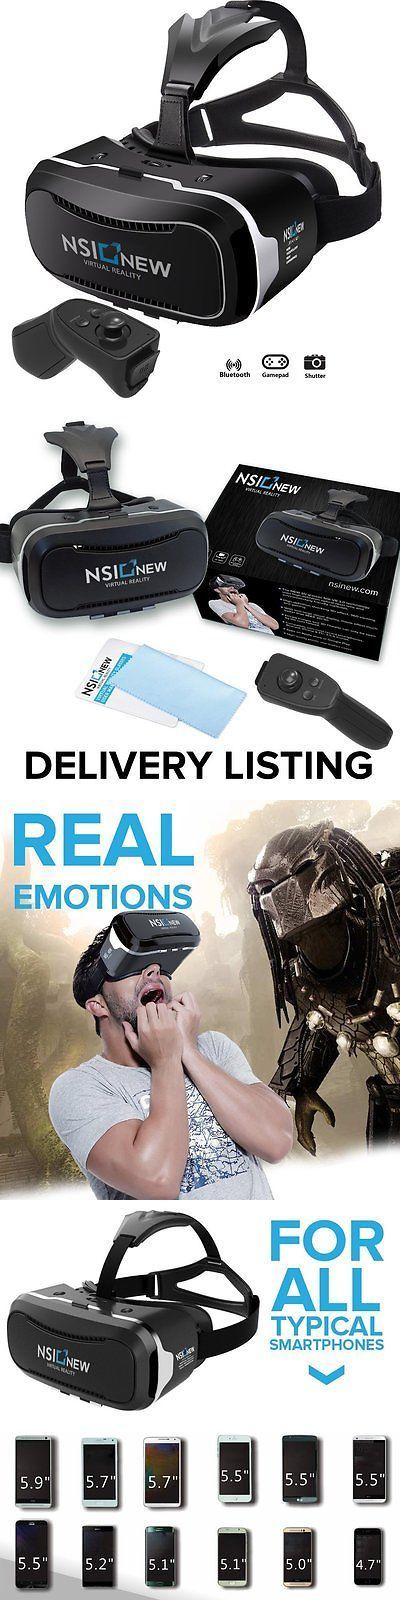 3D TV Glasses and Accessories: Nsinew 3D Virtual Reality Headset Is Hd Vr Goggles Or 3D Vr Glasses For 100%... -> BUY IT NOW ONLY: $50.85 on eBay!